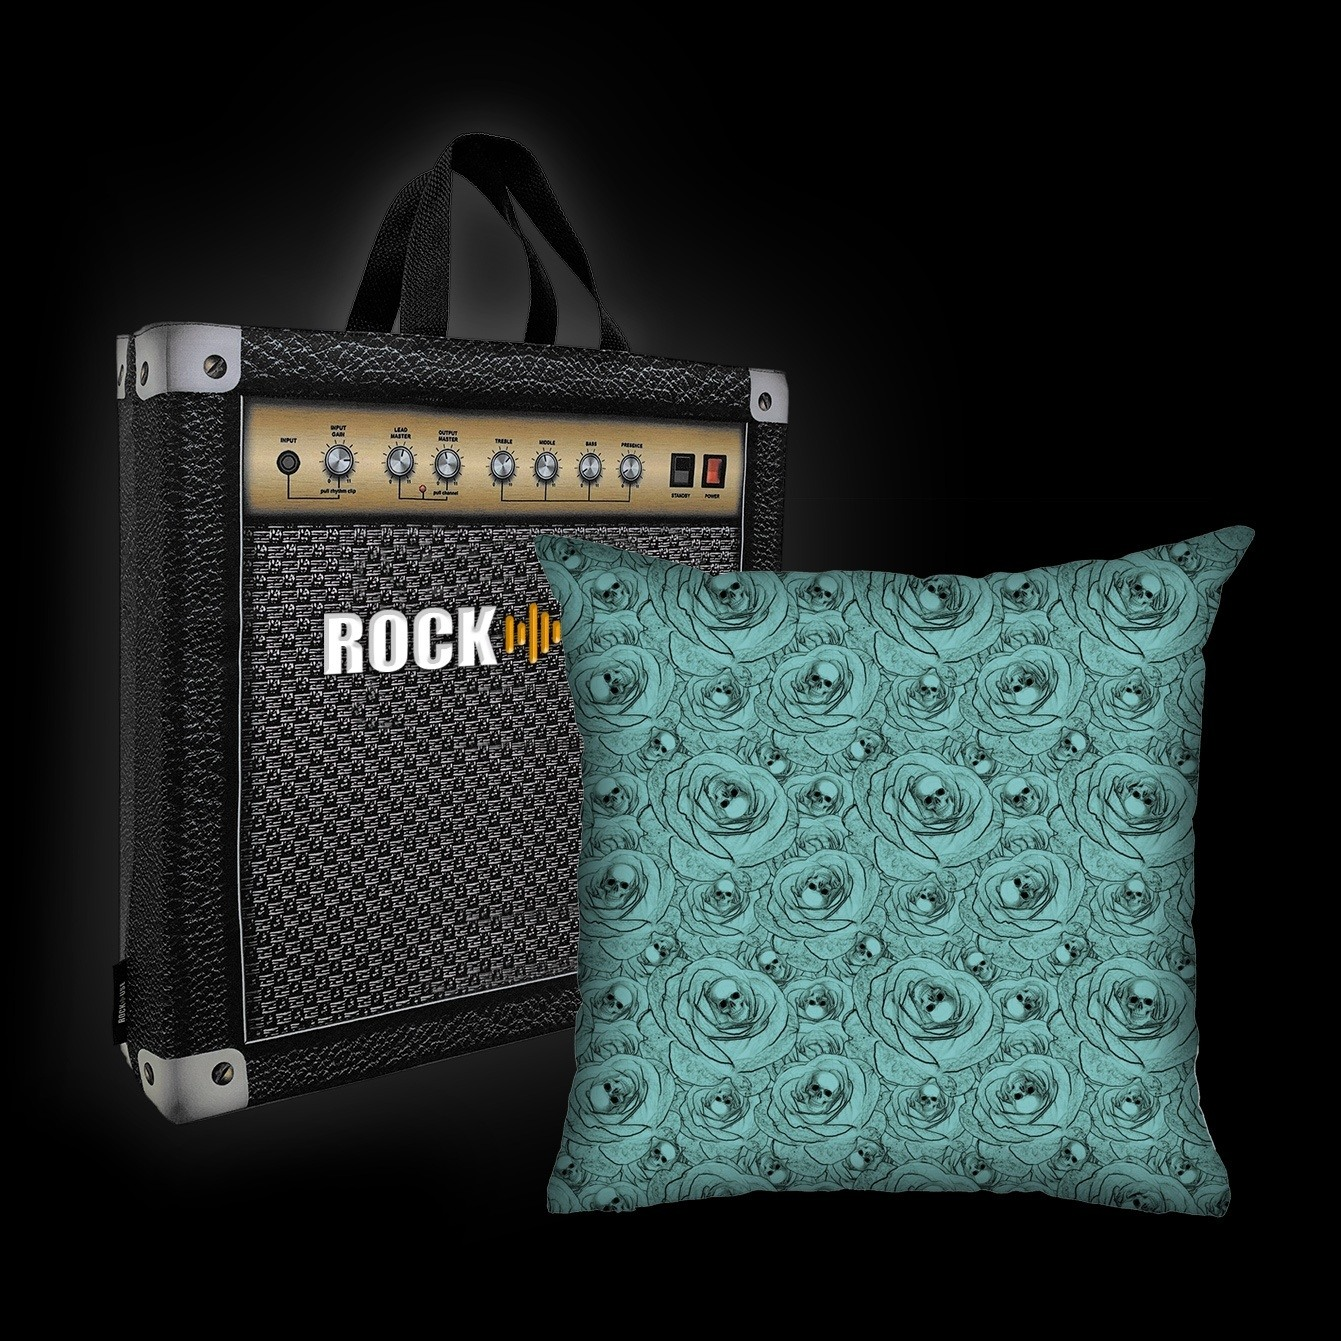 Kit Almofada & Sacola Rock Use - Skull & Roses - Tiffany